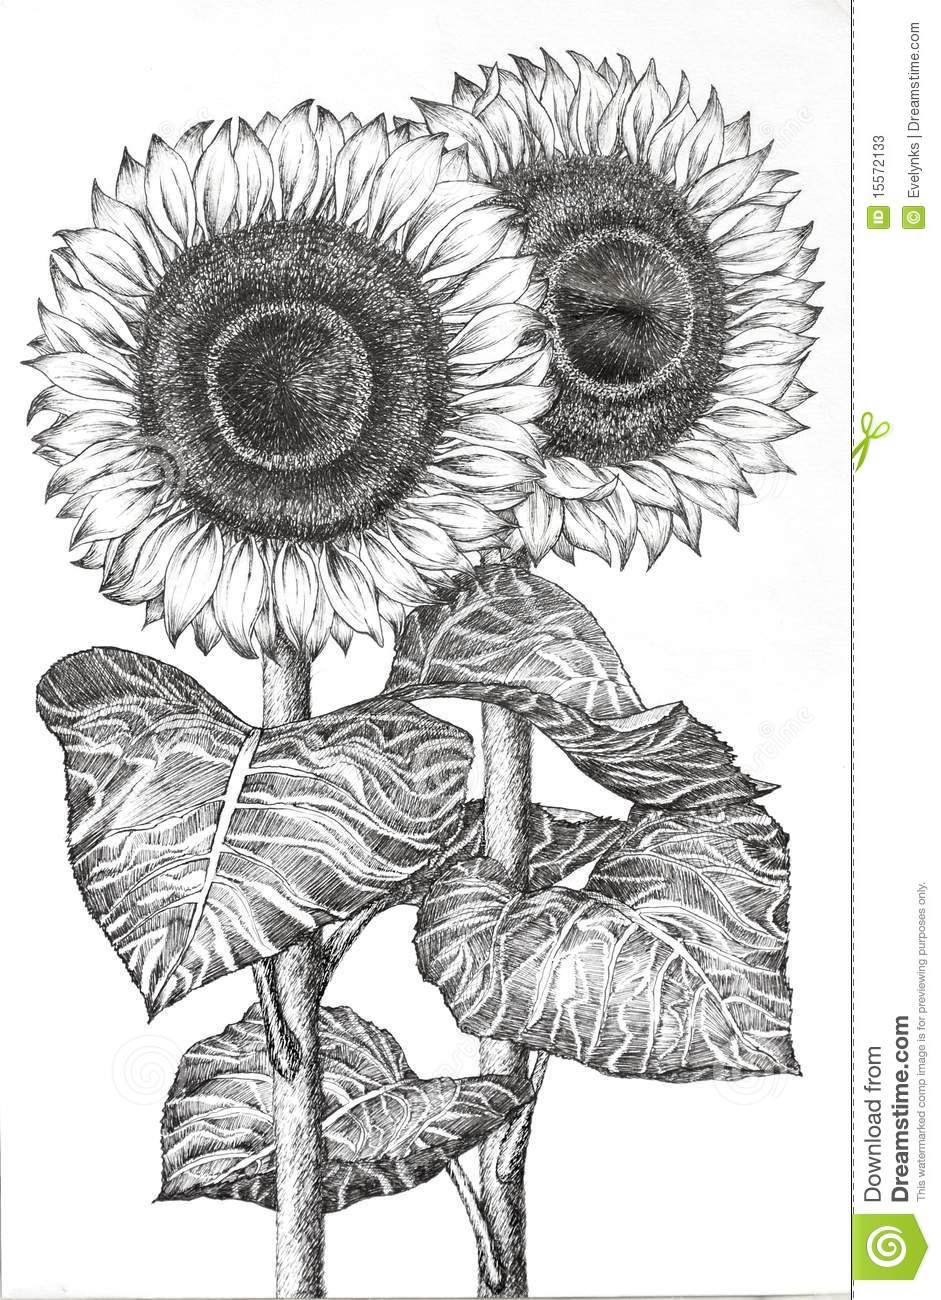 Hand Drawn Image Of Two Sunflowers Stock Illustration Illustration Of Blossom Original 15572133